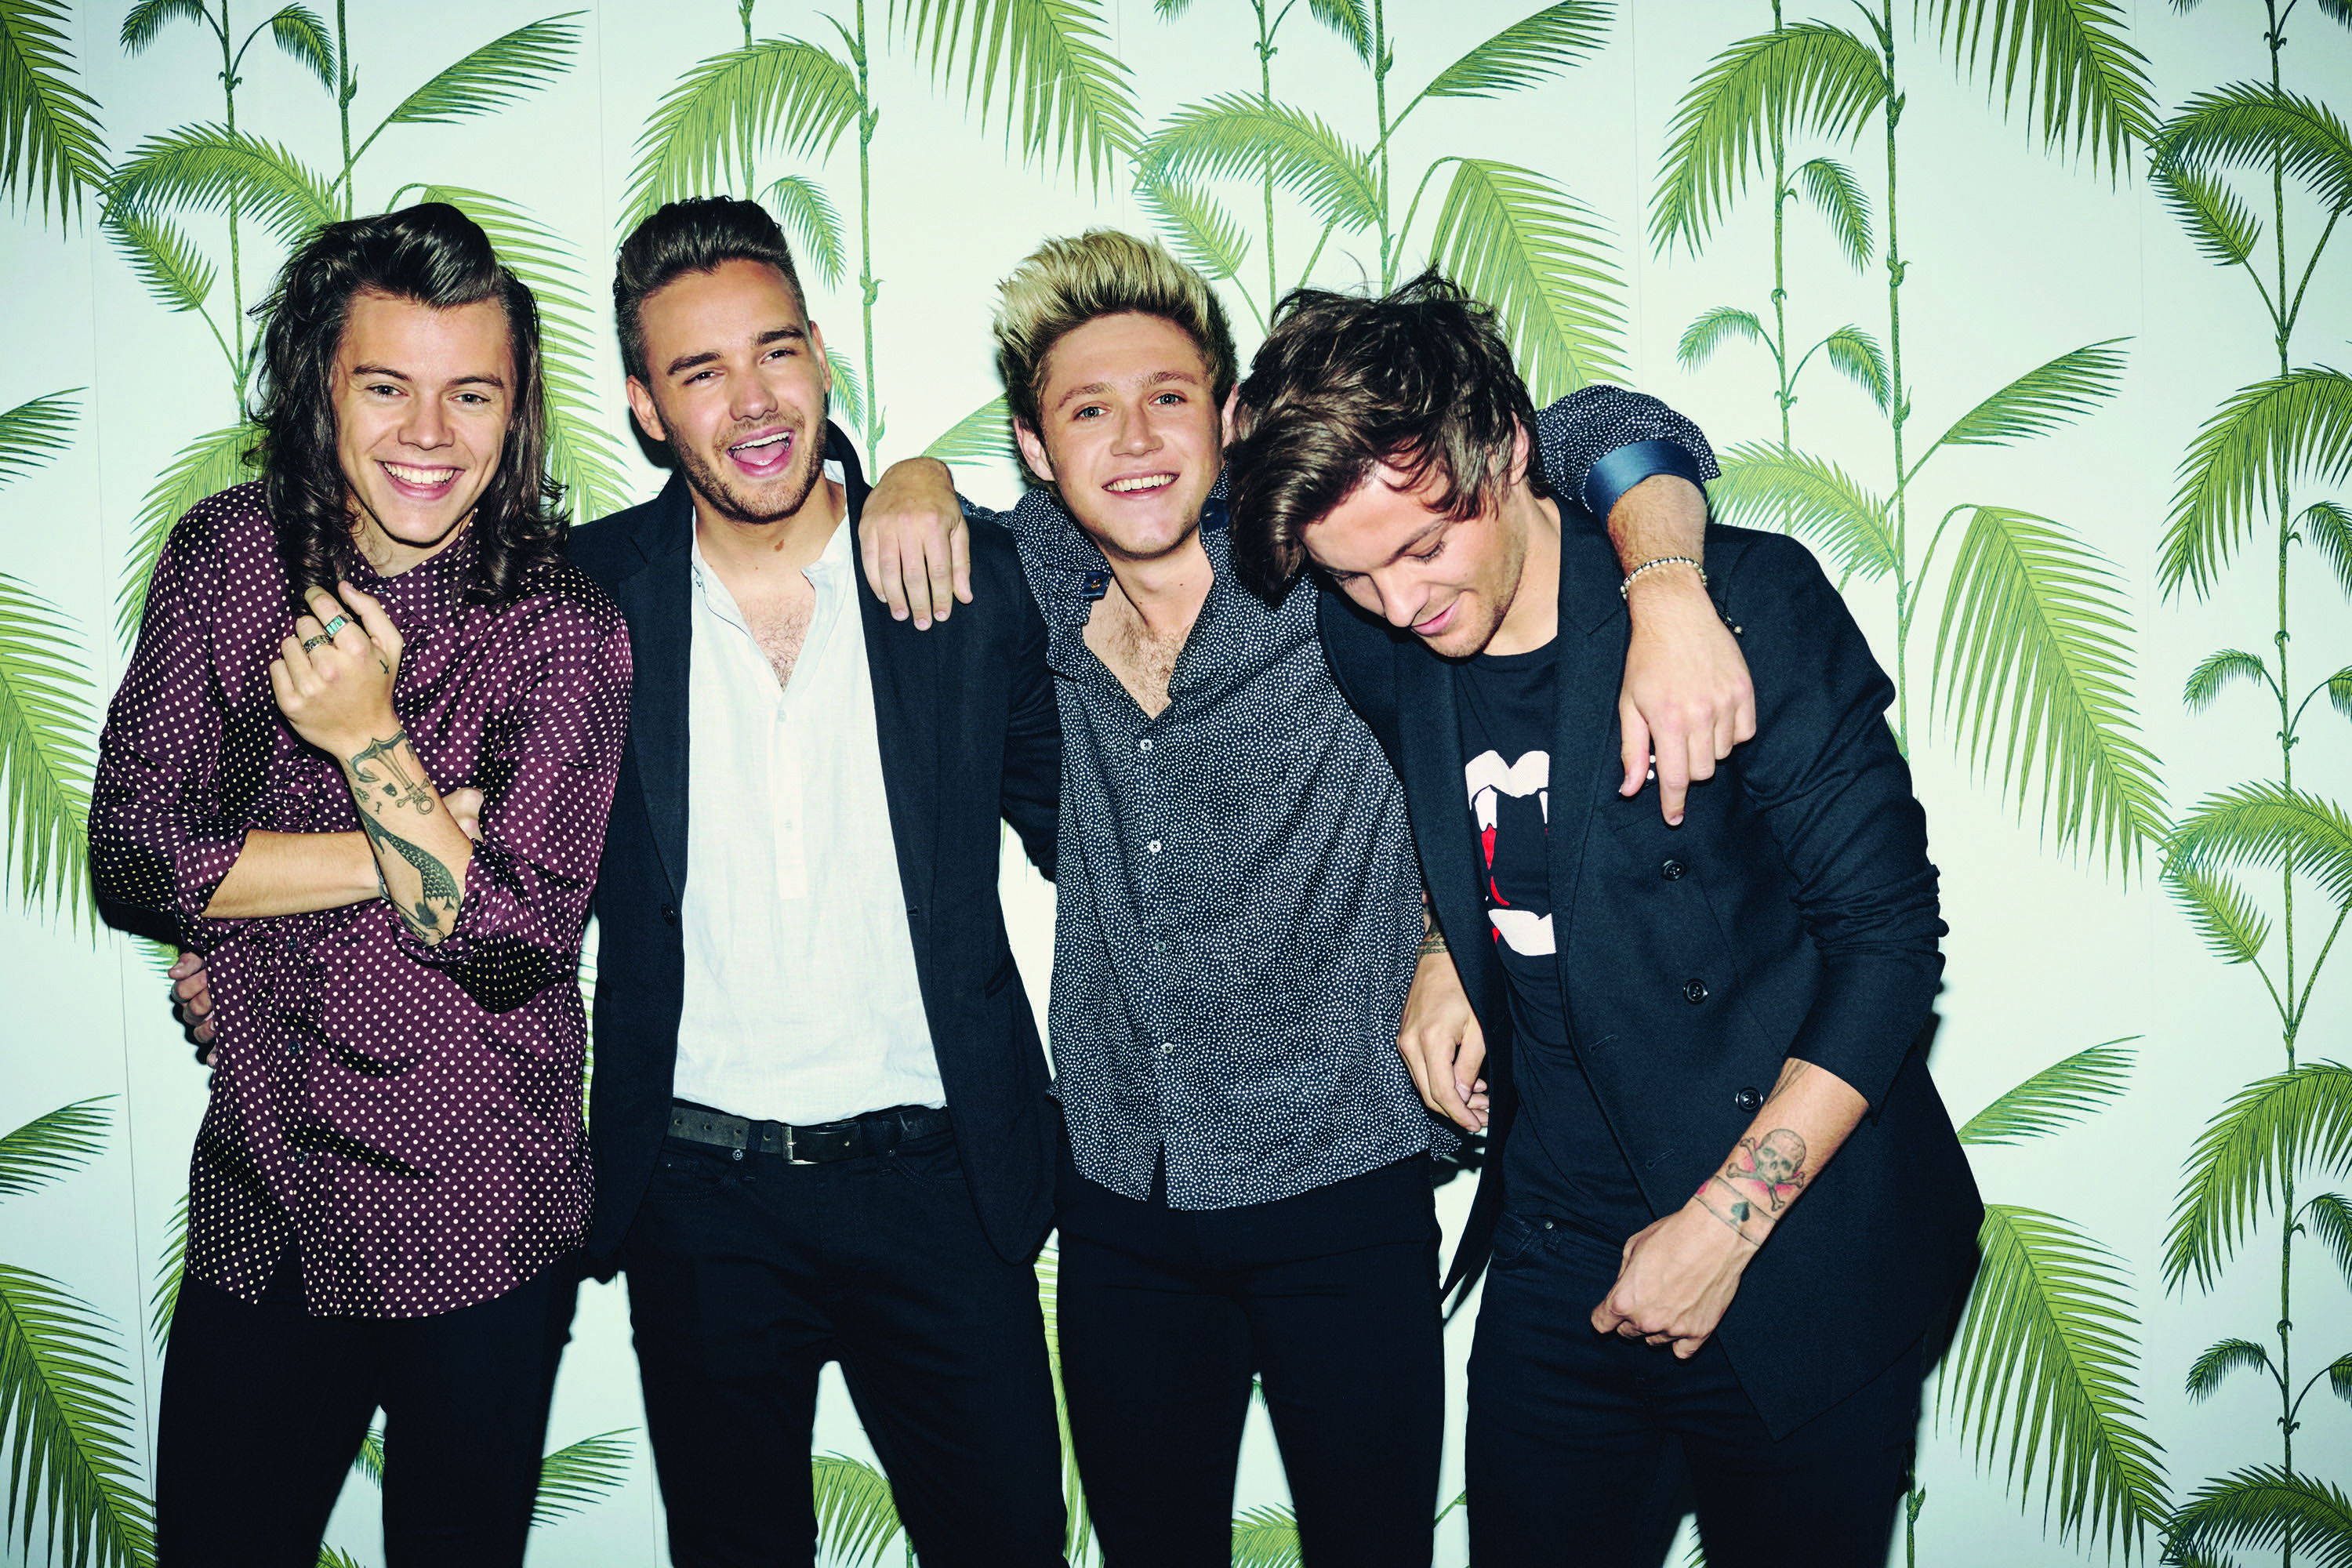 One Direction drop first new single without Zayn Malik… and top iTunes chart within an hour